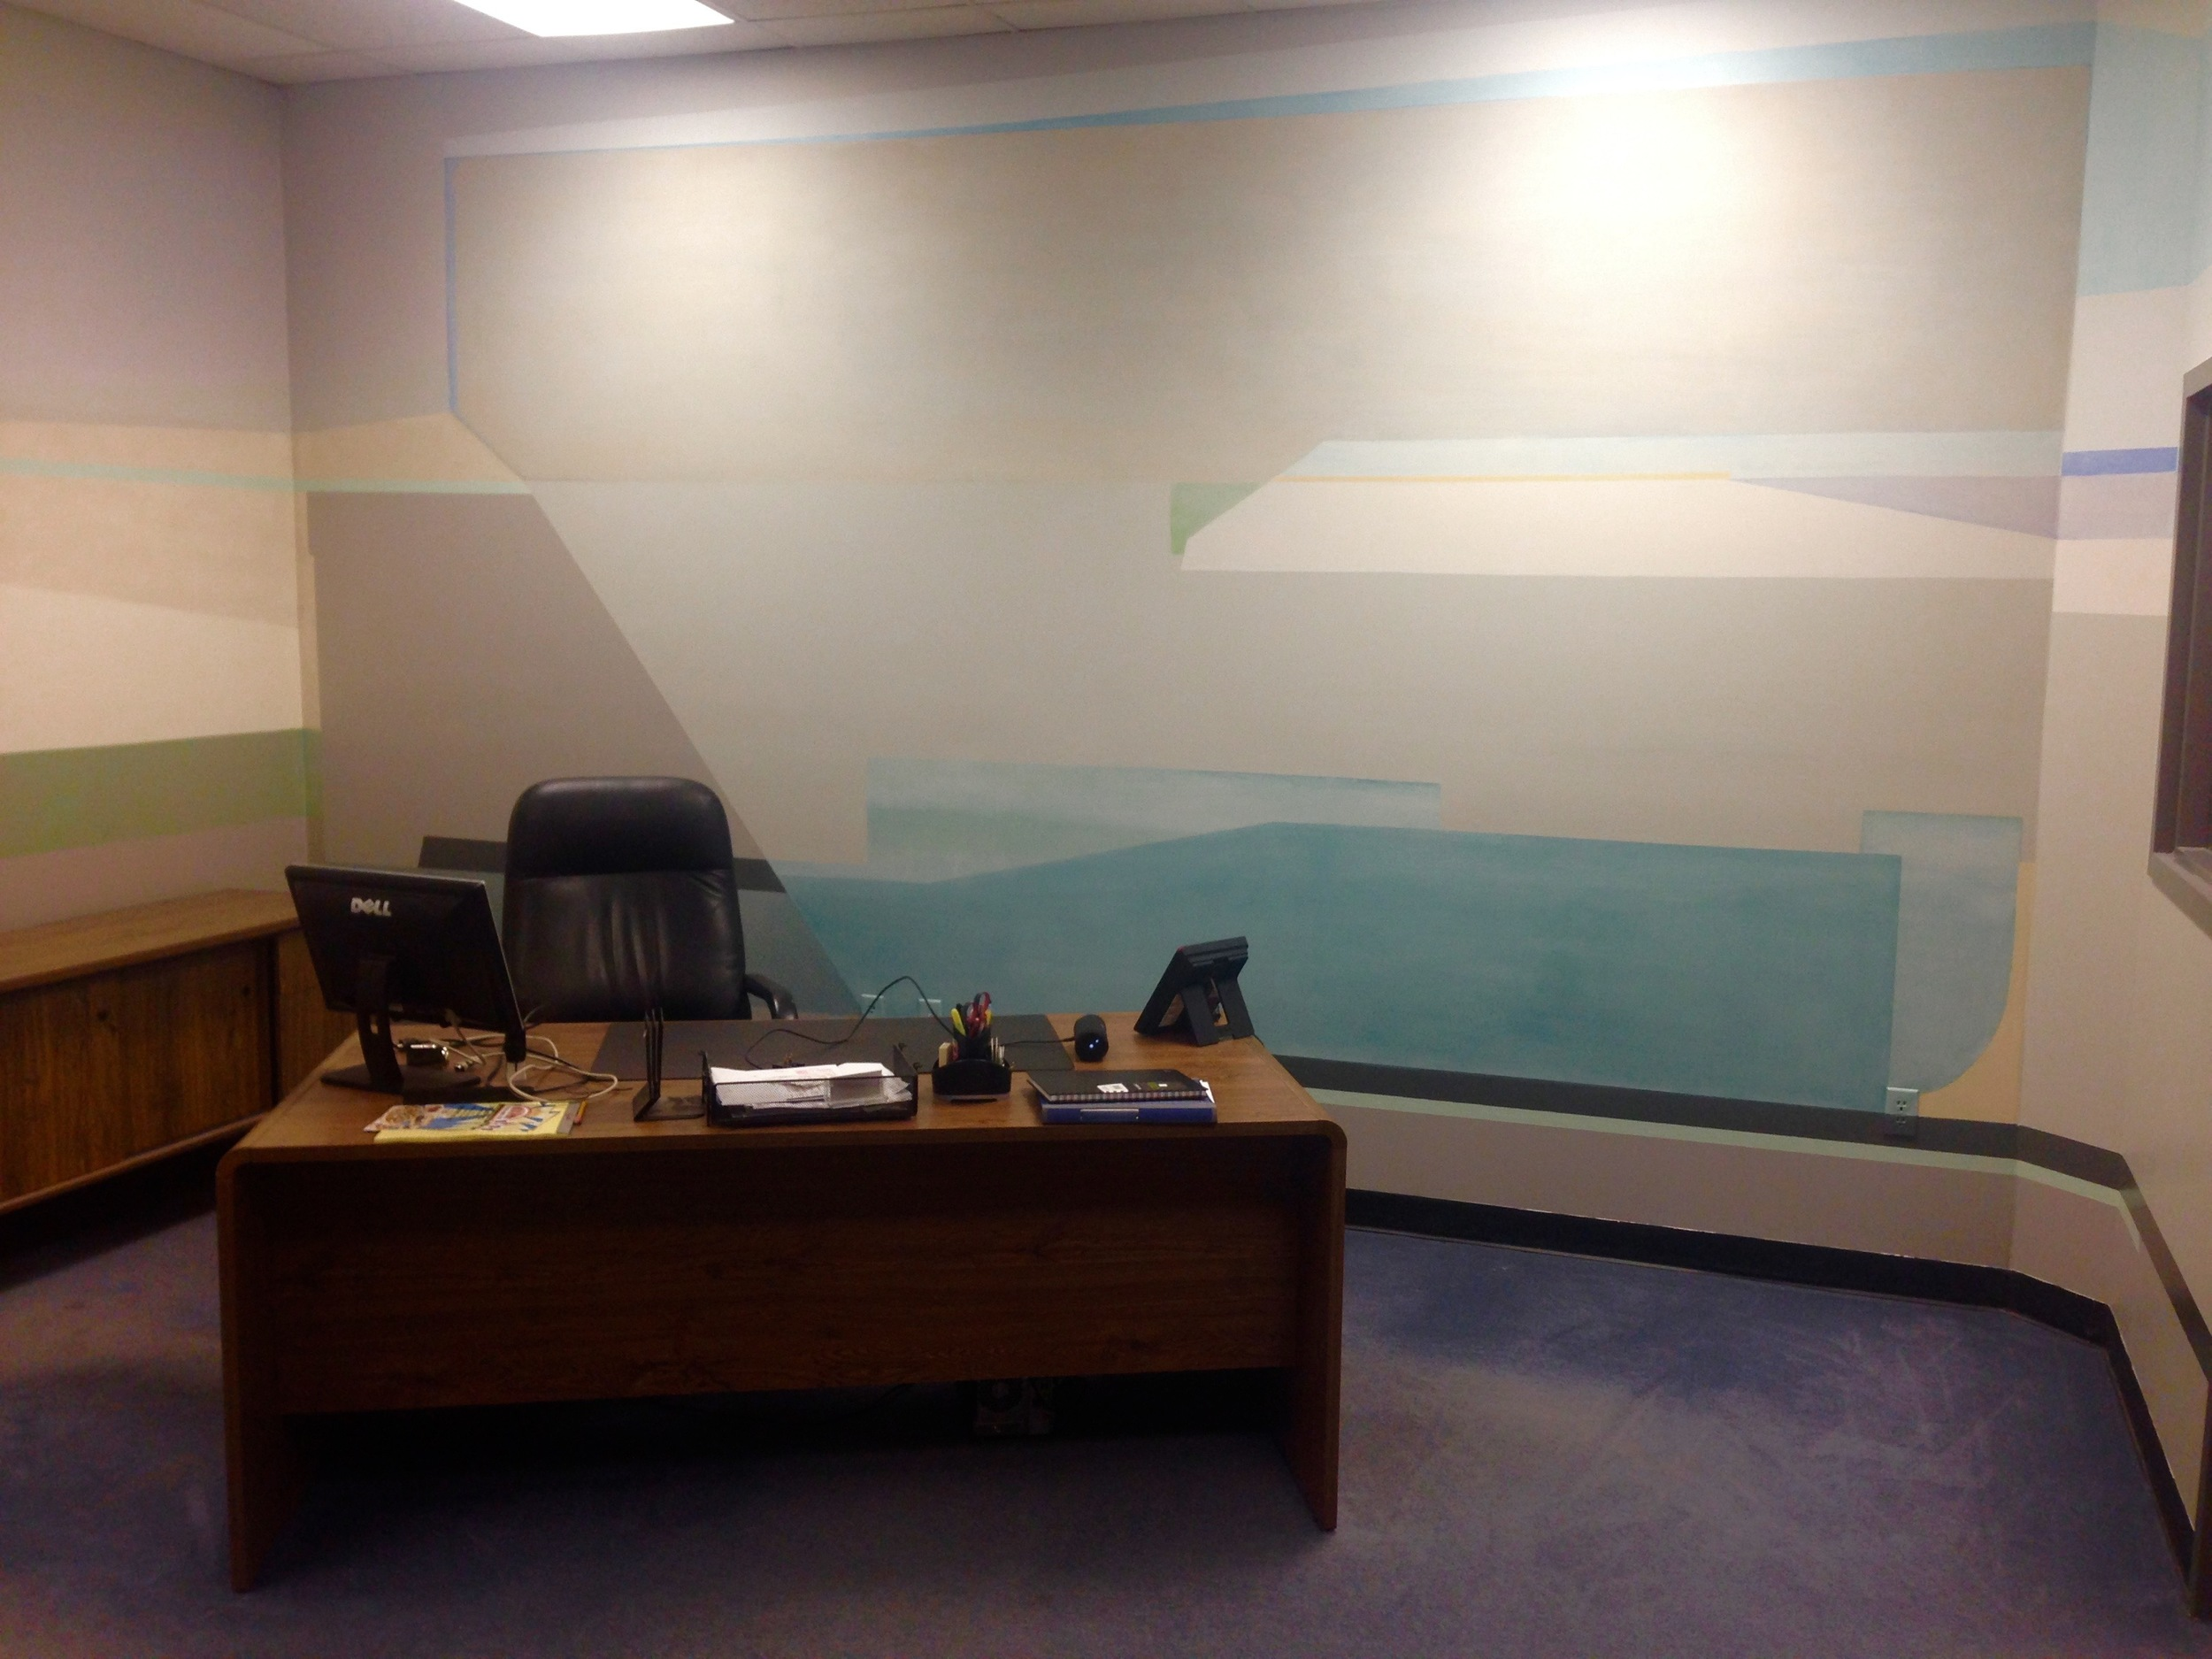 Reception area of the office